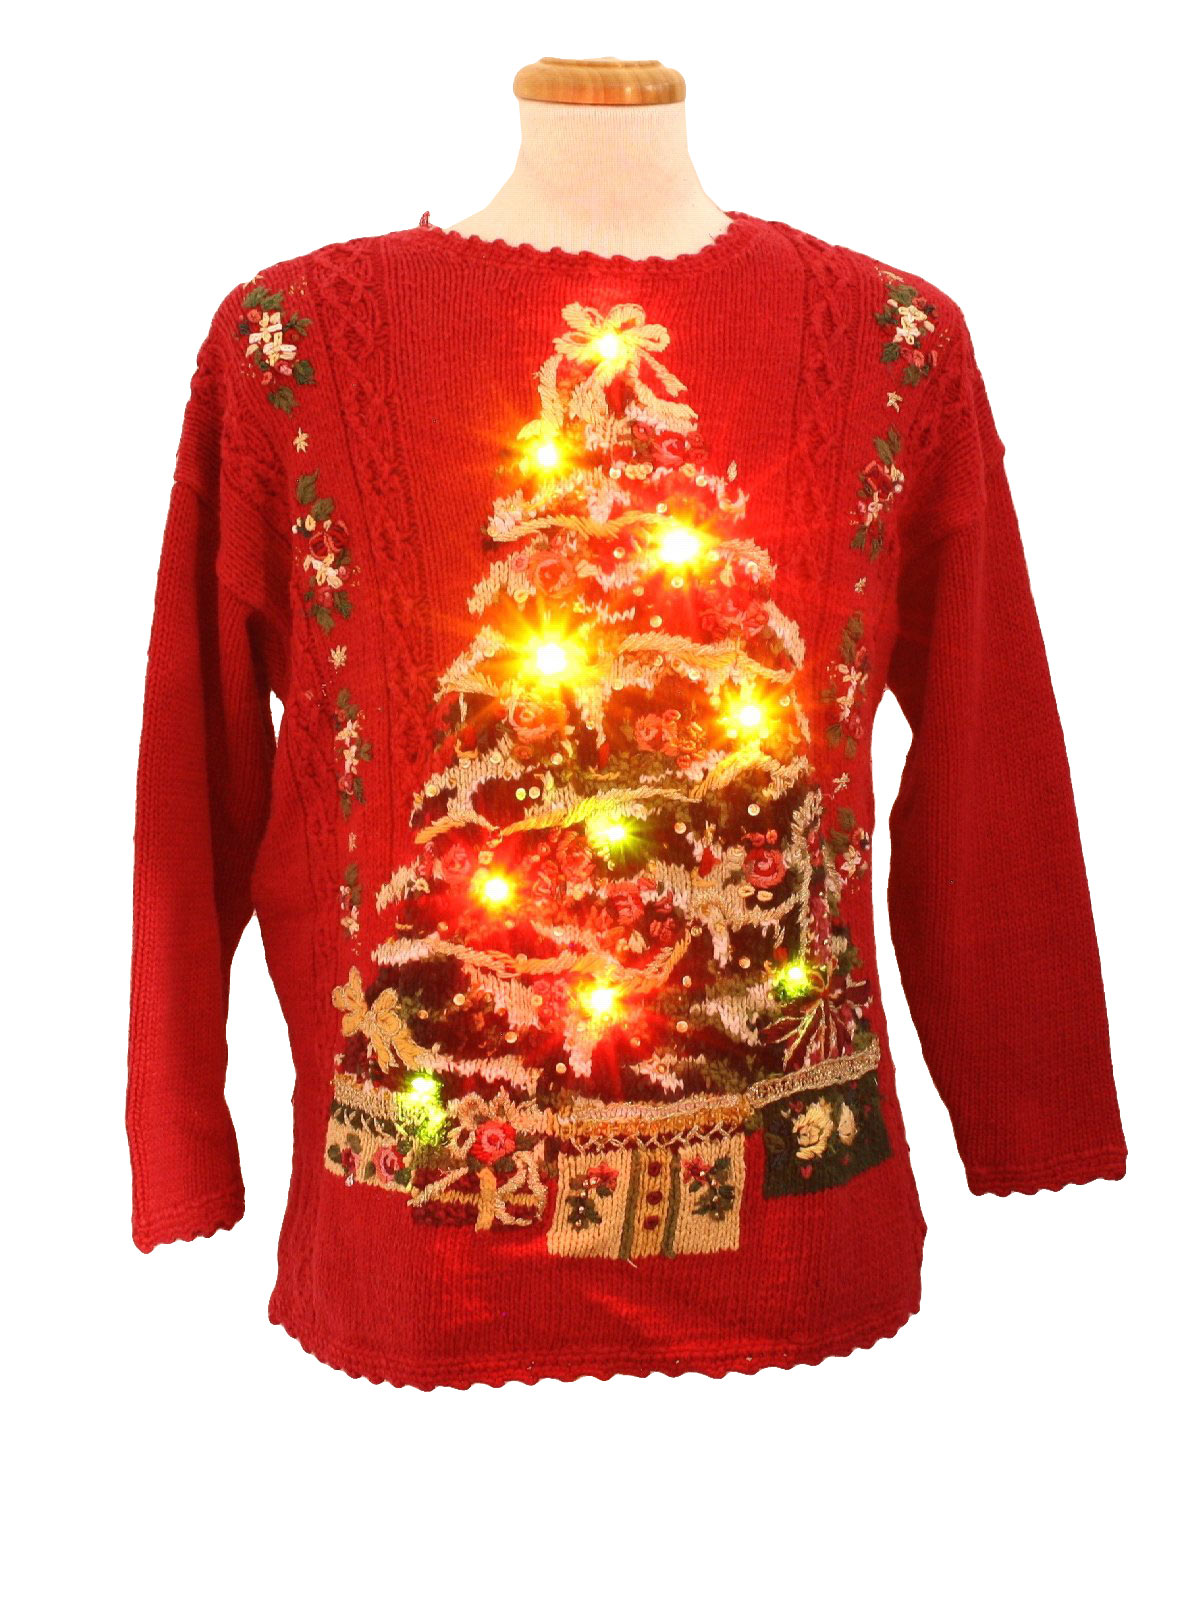 Best place buy ugly christmas sweaters